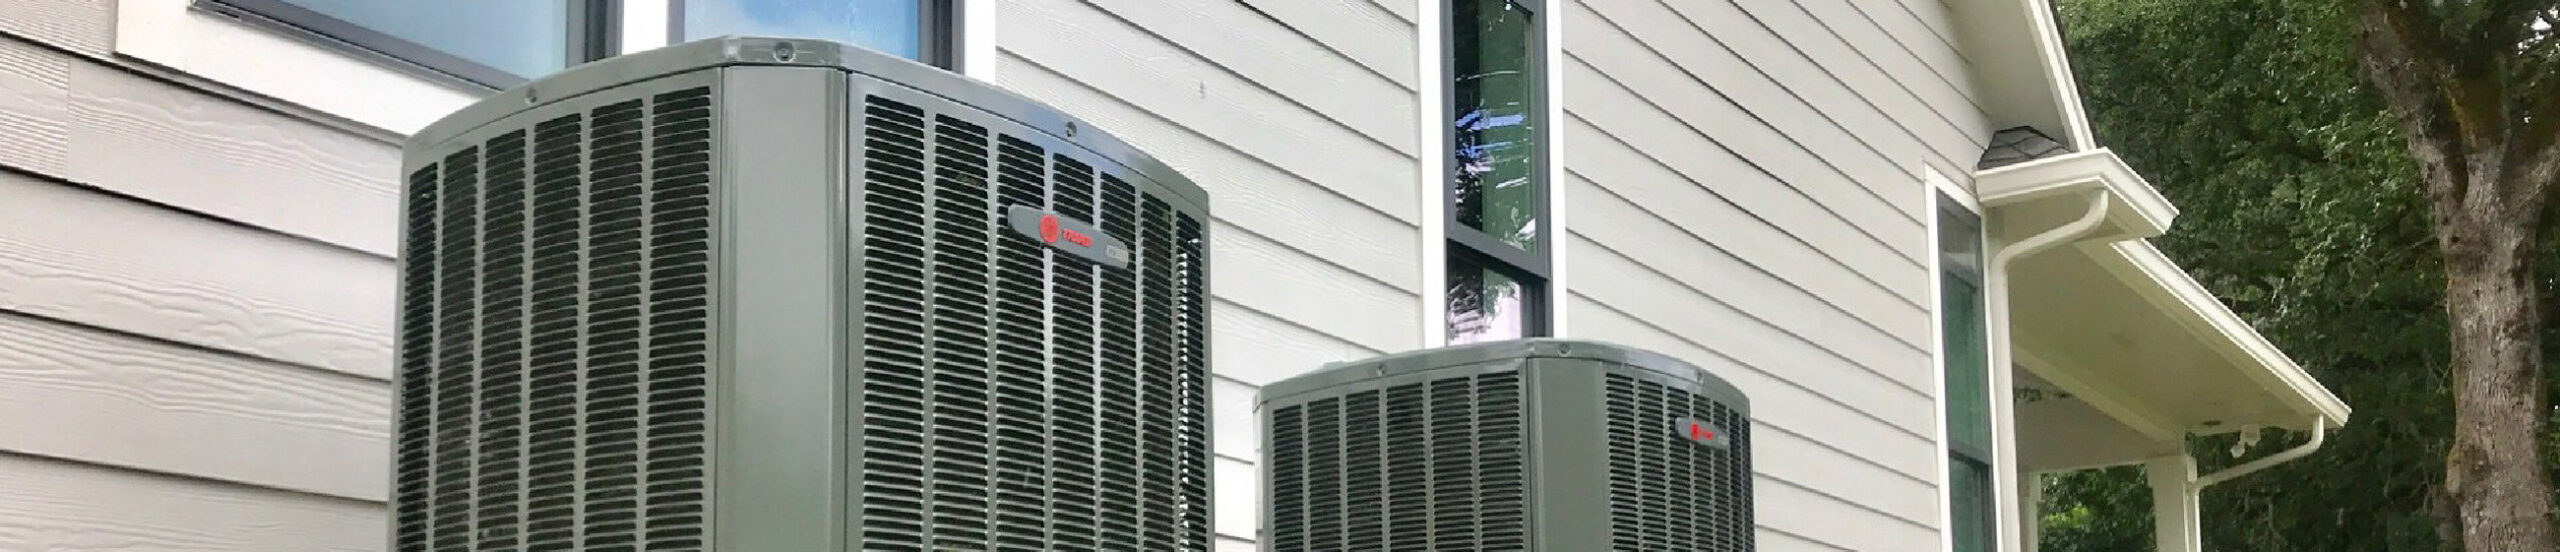 External Air Conditioners